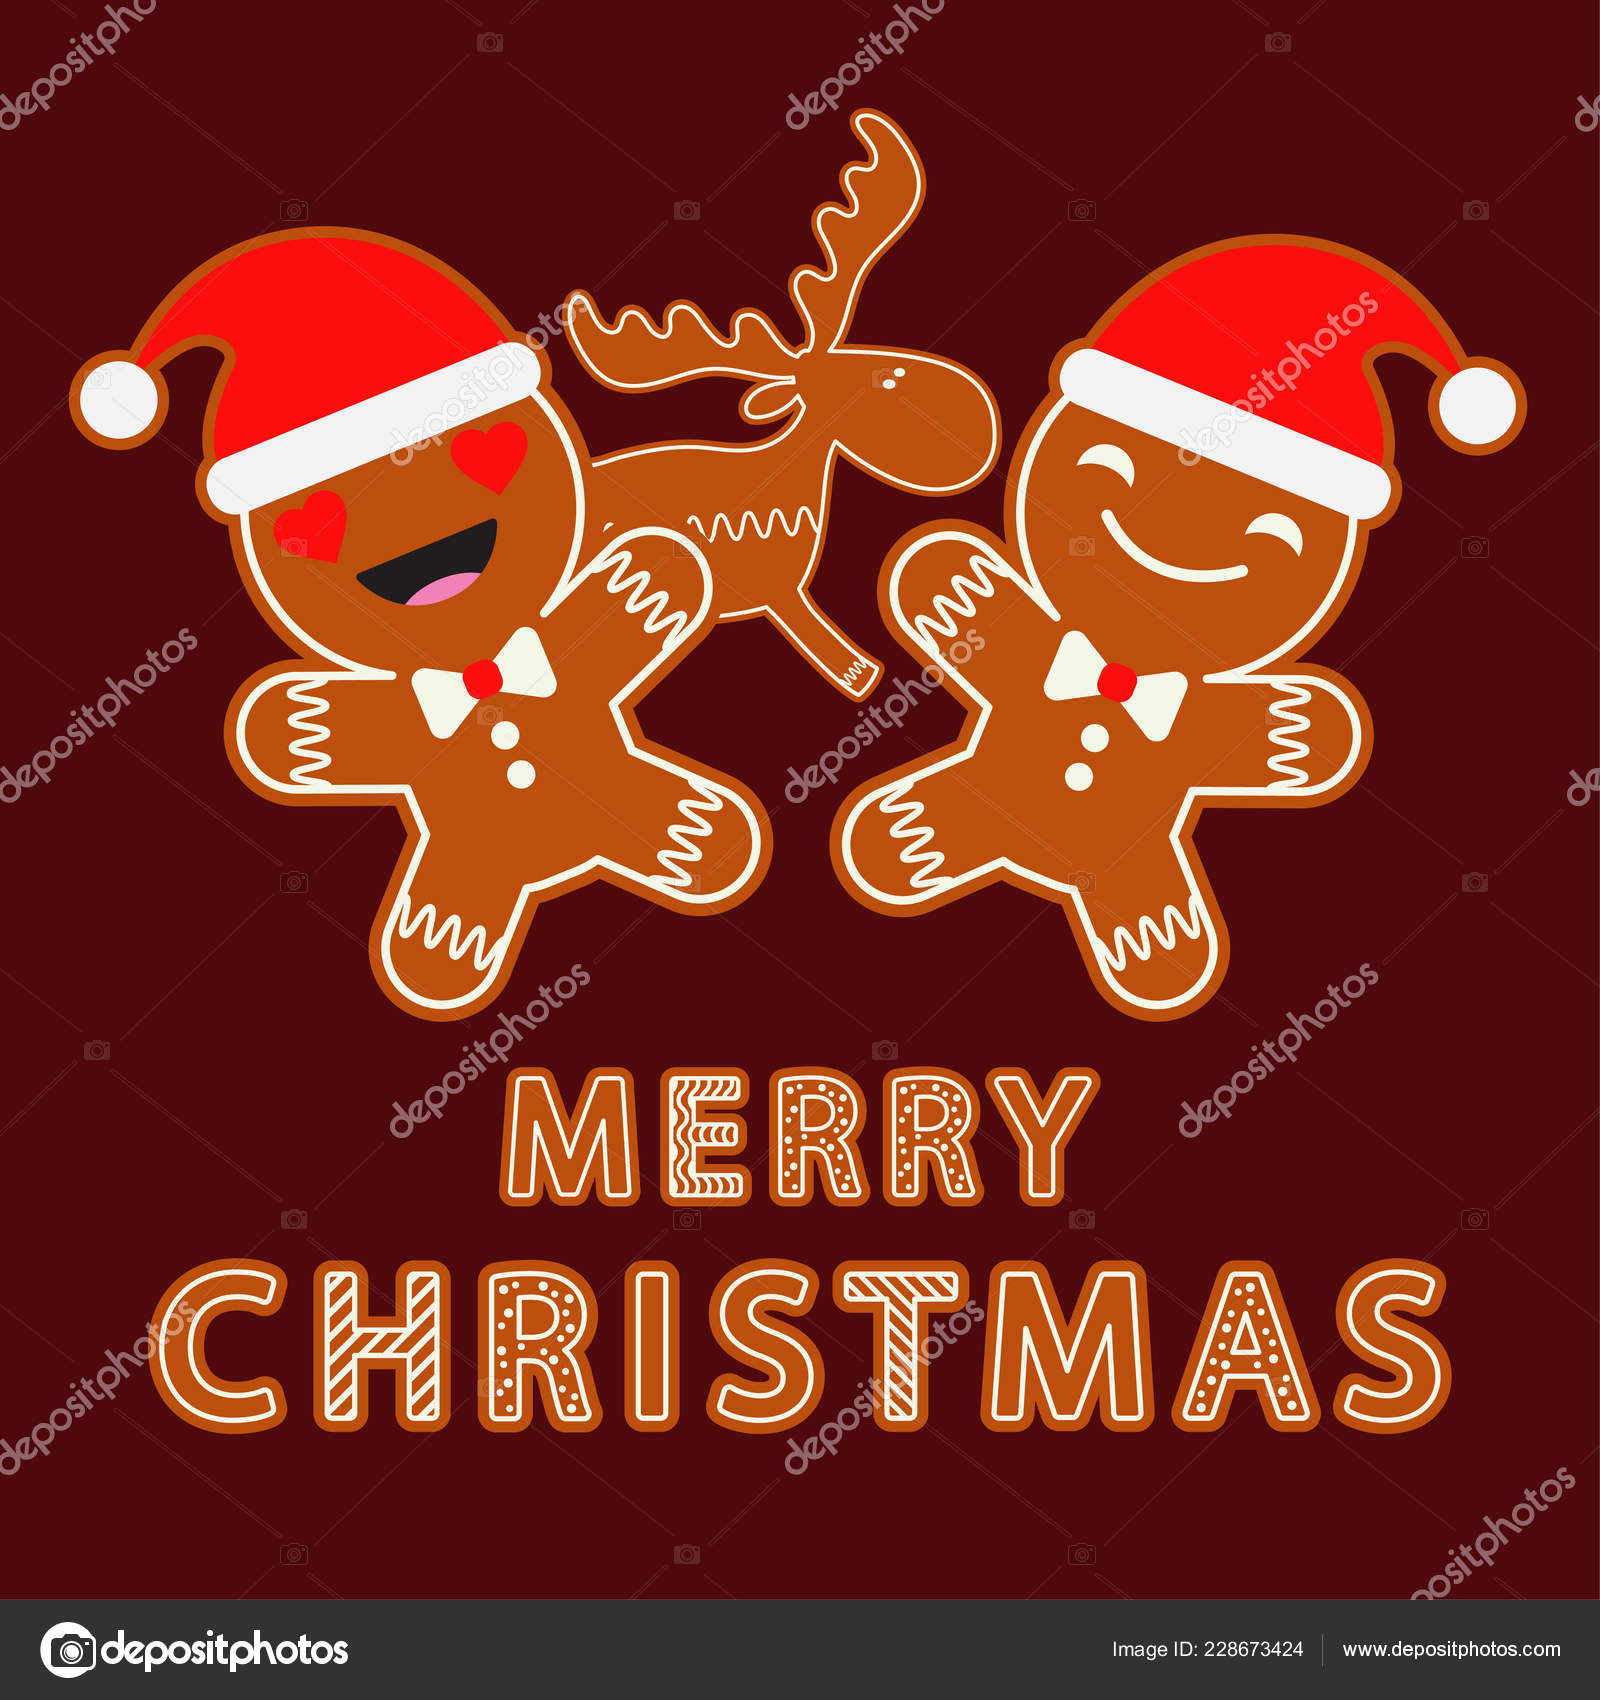 depositphotos 228673424 stock illustration gingerbread brown background christmas gingerman